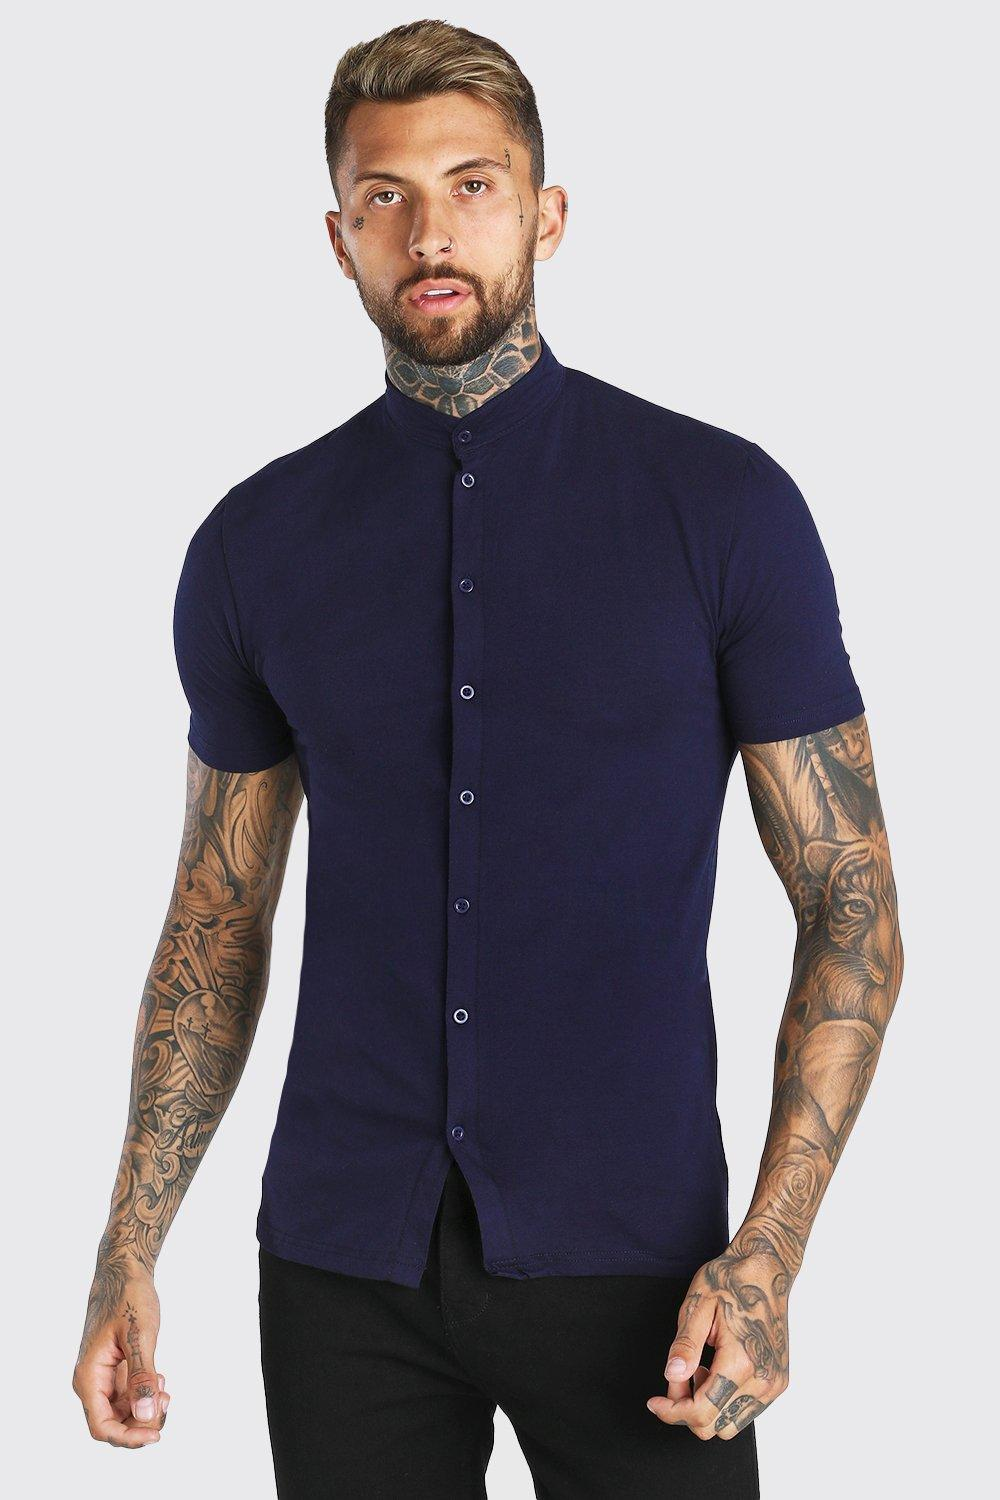 417857c5 Mens Navy Muscle Fit Short Sleeve Grandad Jersey Shirt. Hover to zoom